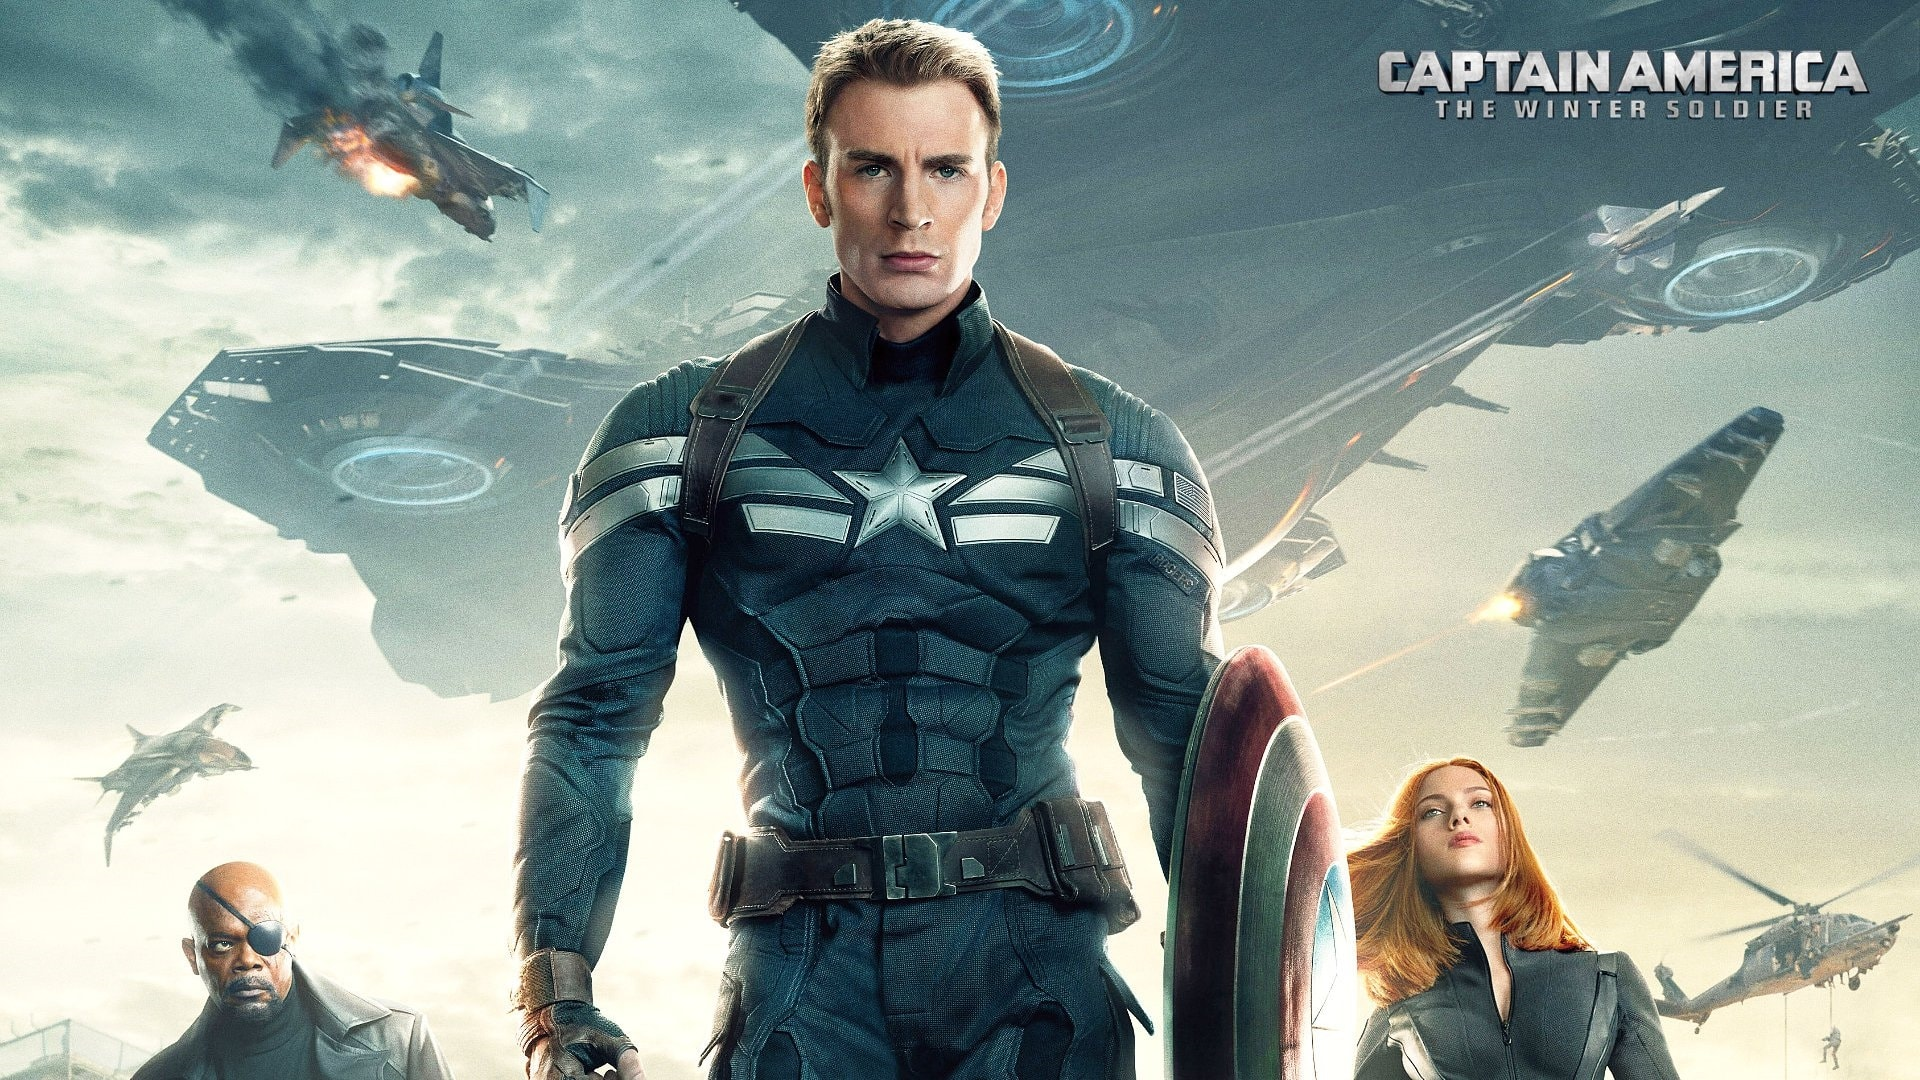 Captain America: The Winter Soldier HQ wallpapers